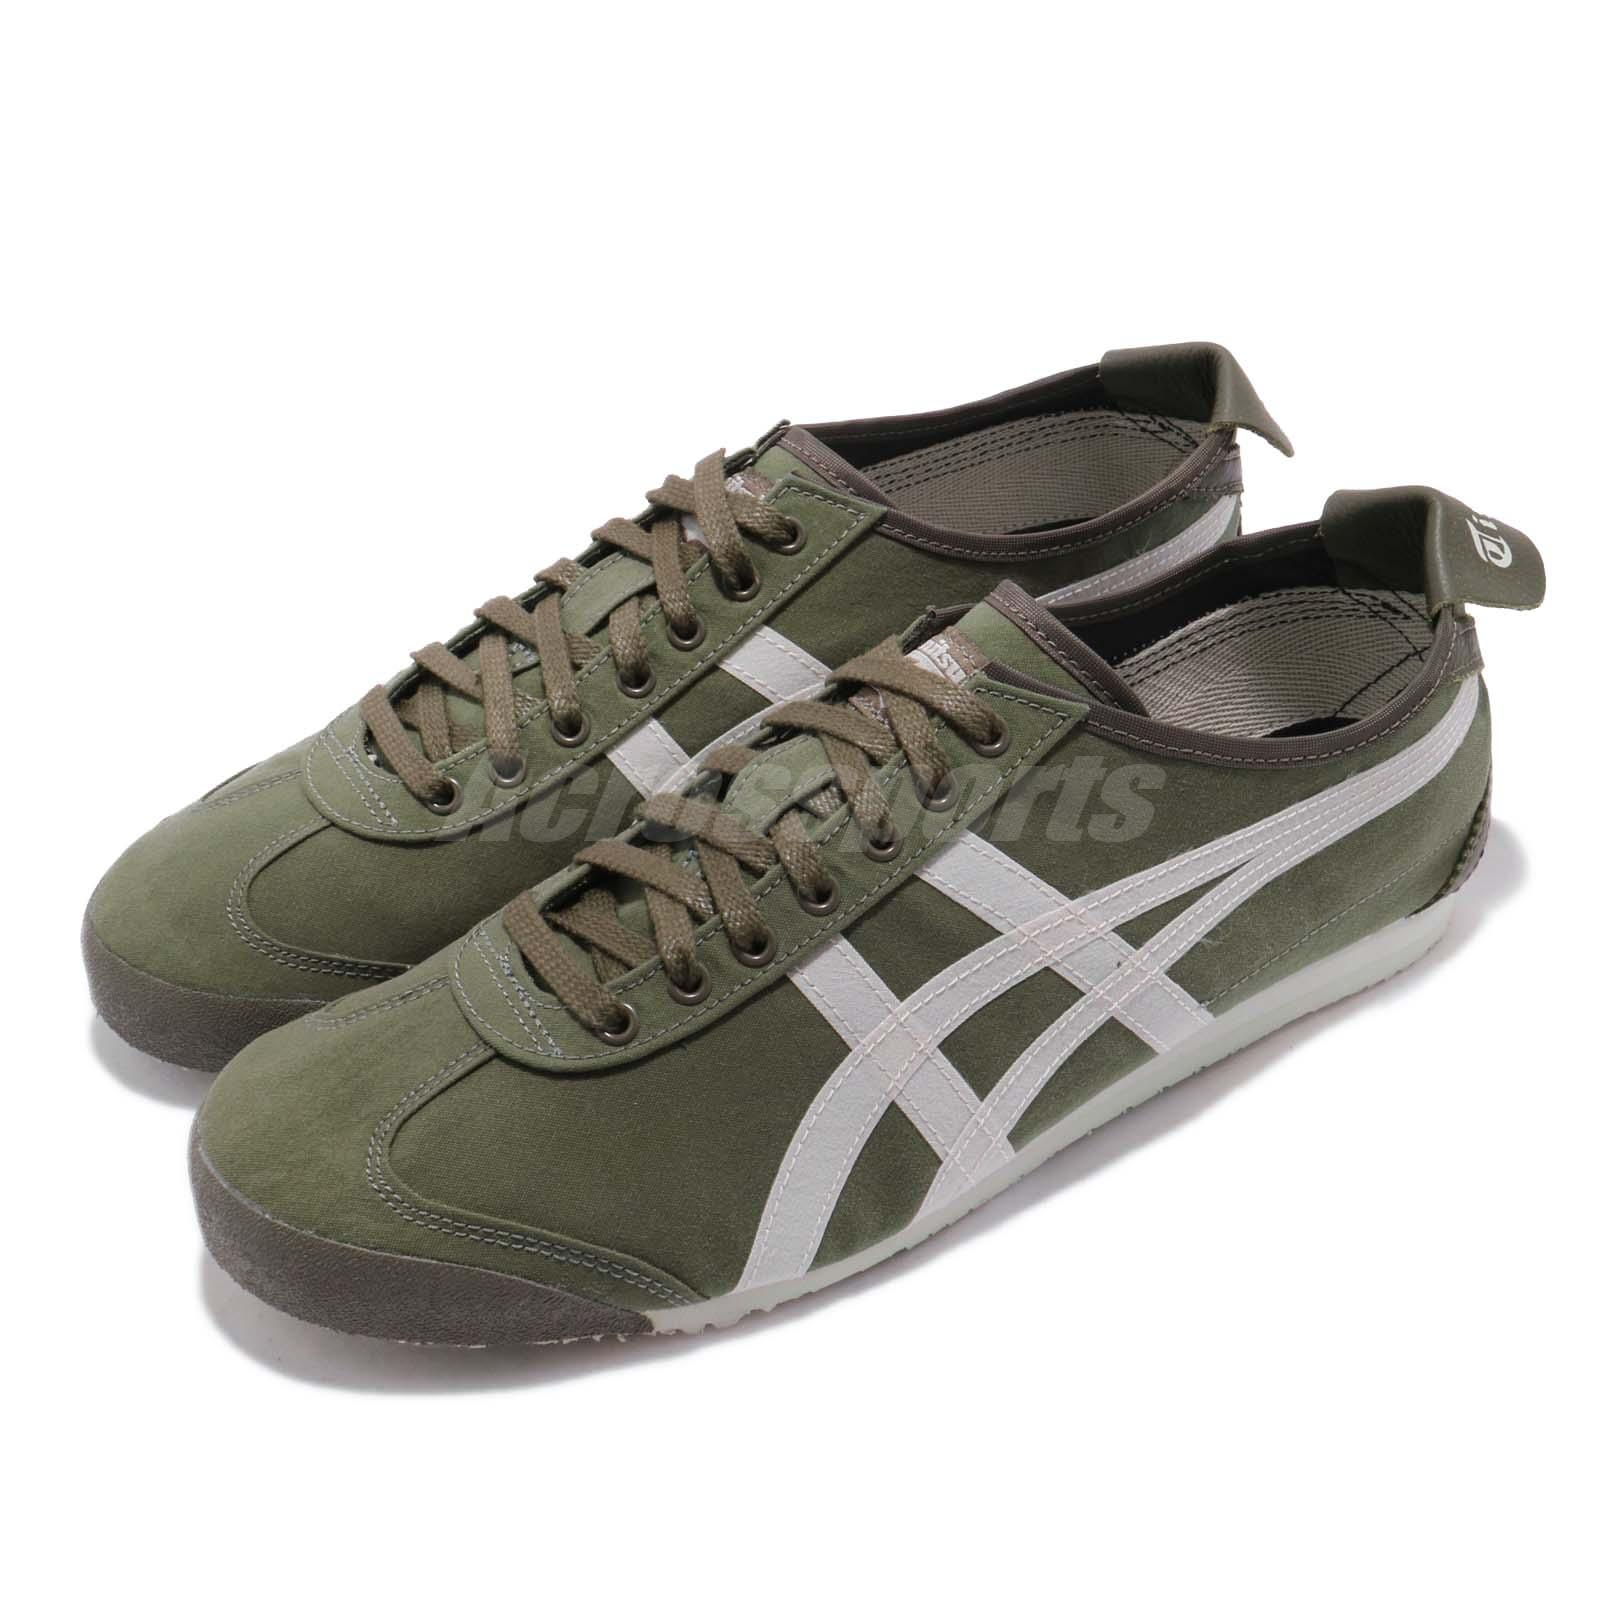 buy online 8ba94 ca2a5 Details about Asics Onitsuka Tiger Mexico 66 Olive Green Men Women Running  Shoes 1183A348-300